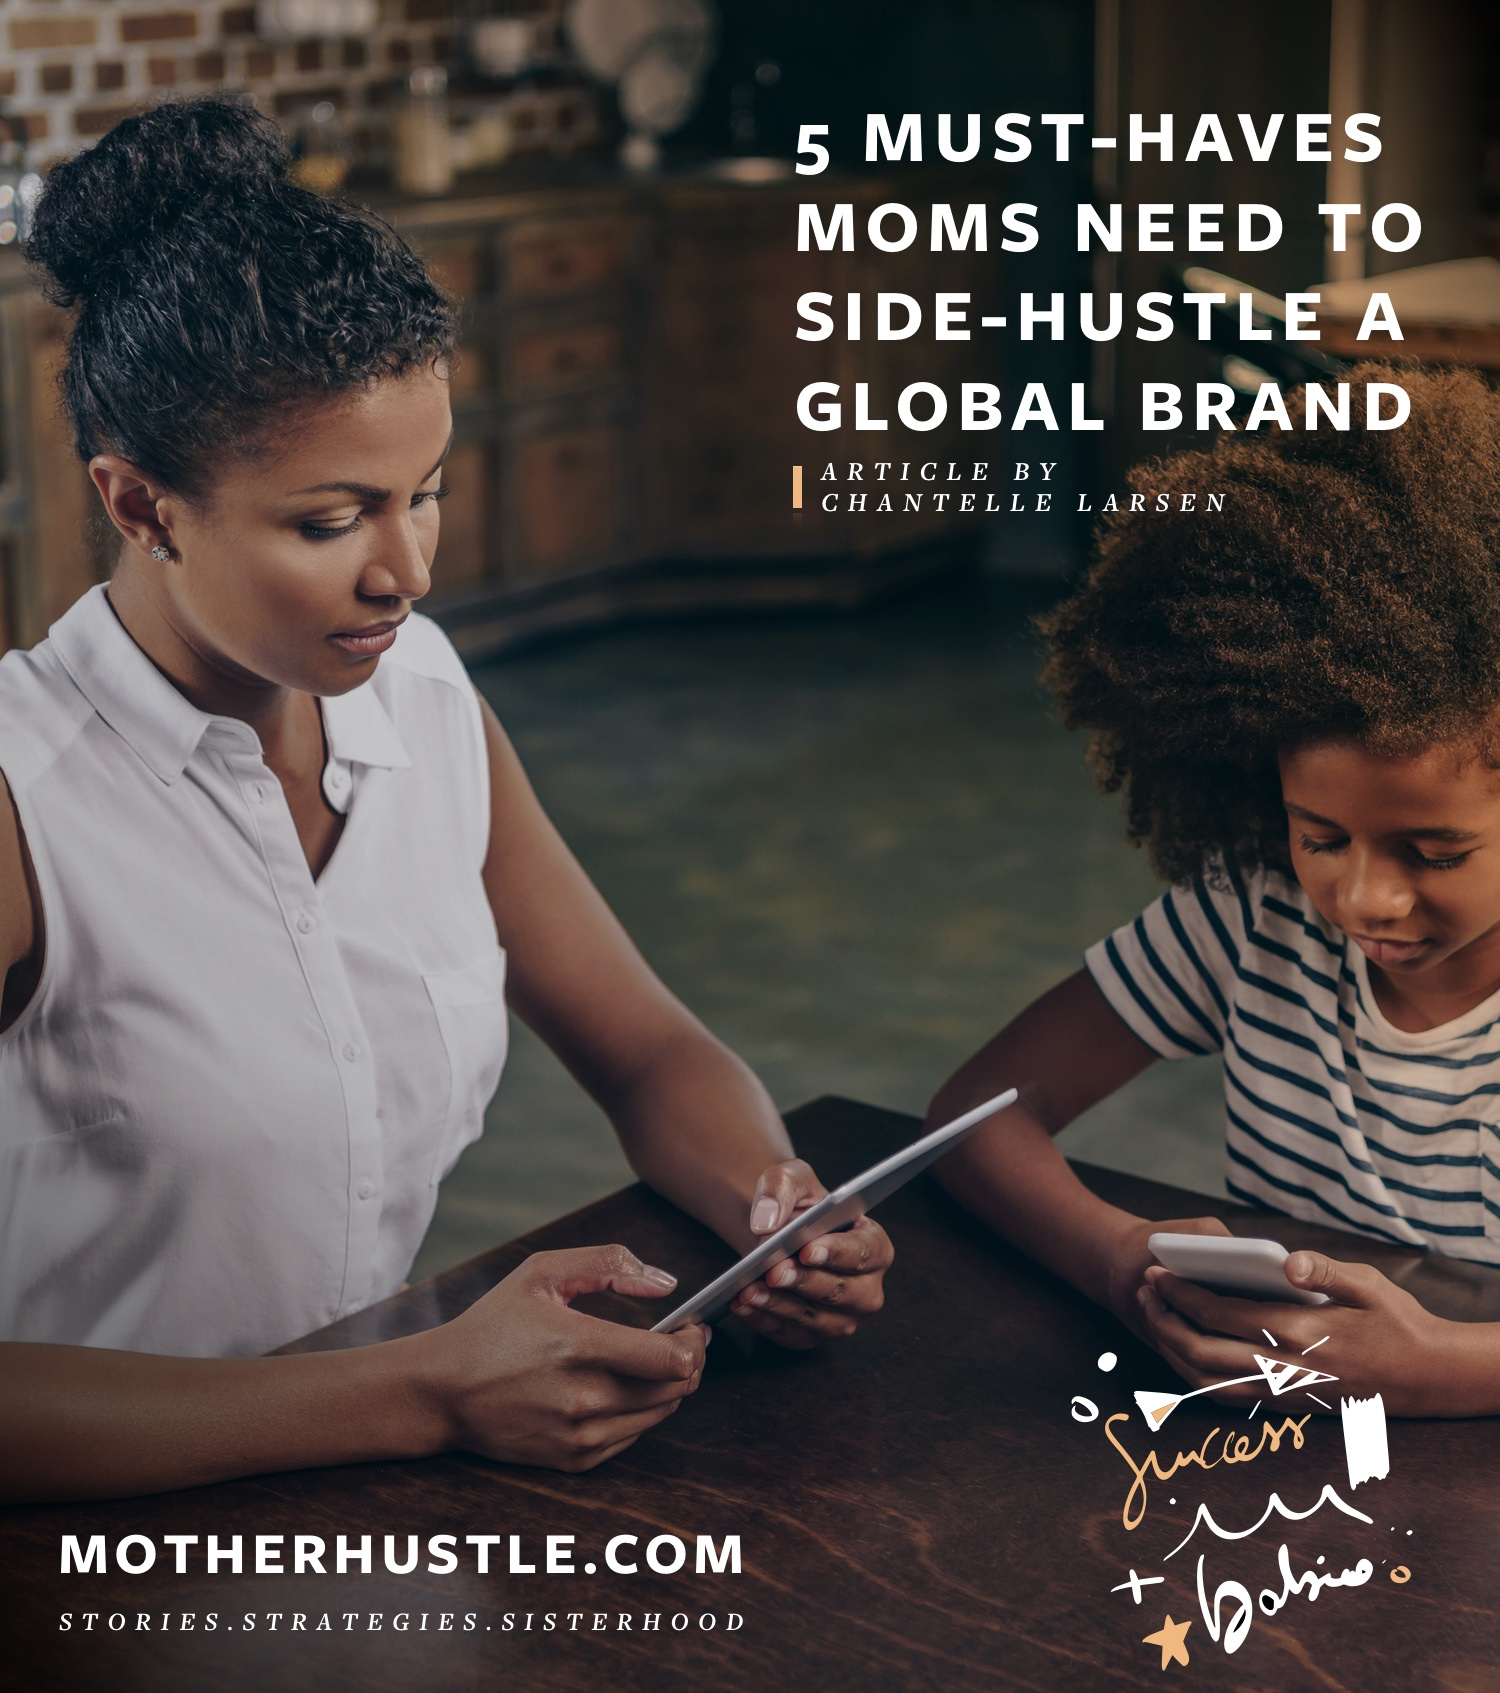 5 Must-Haves Mums Need to Side-Hustle a Global Brand - by Chantelle Larsen for MotherHustle